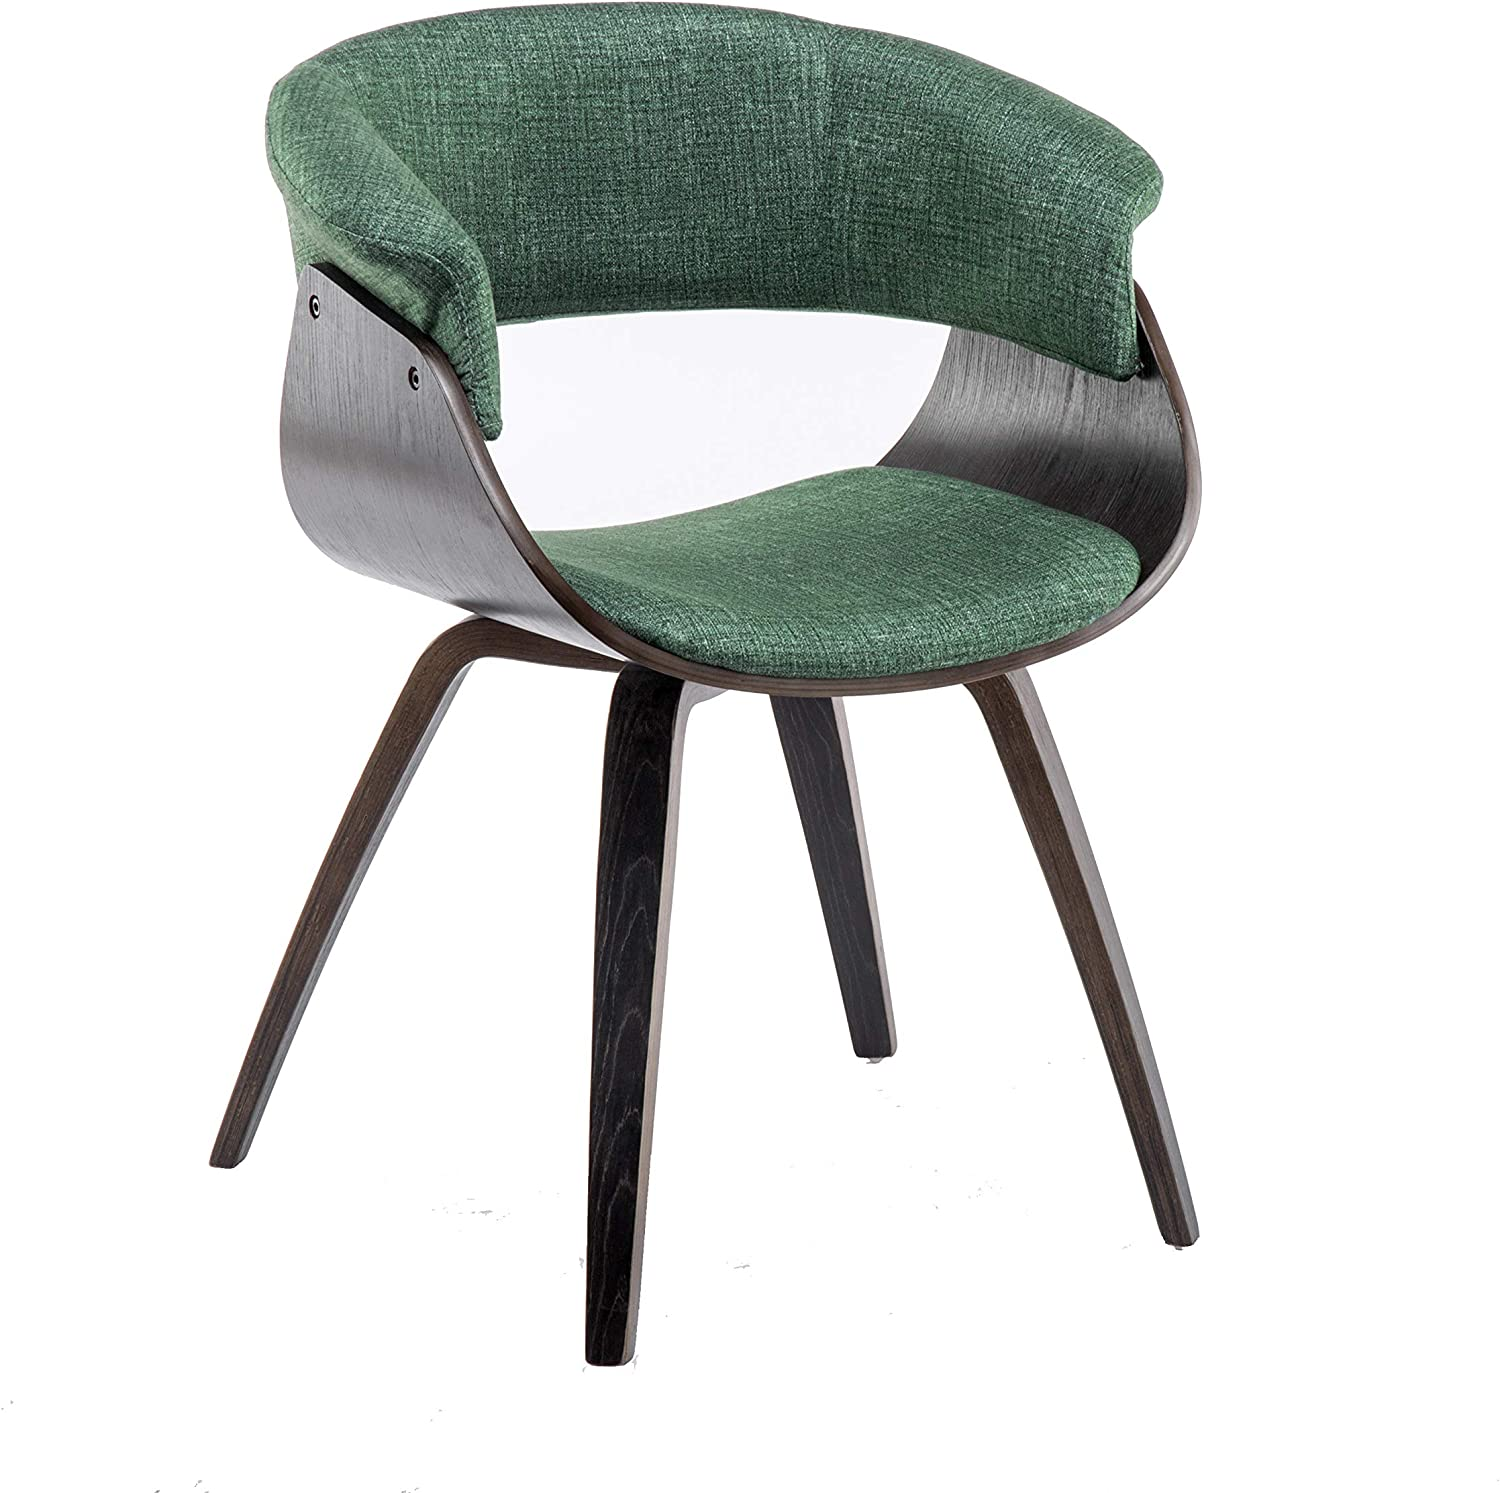 YEEFY Living Room Chair Dining Chairs in Fabic Upholstered Dining Chairs Bent Wood Green